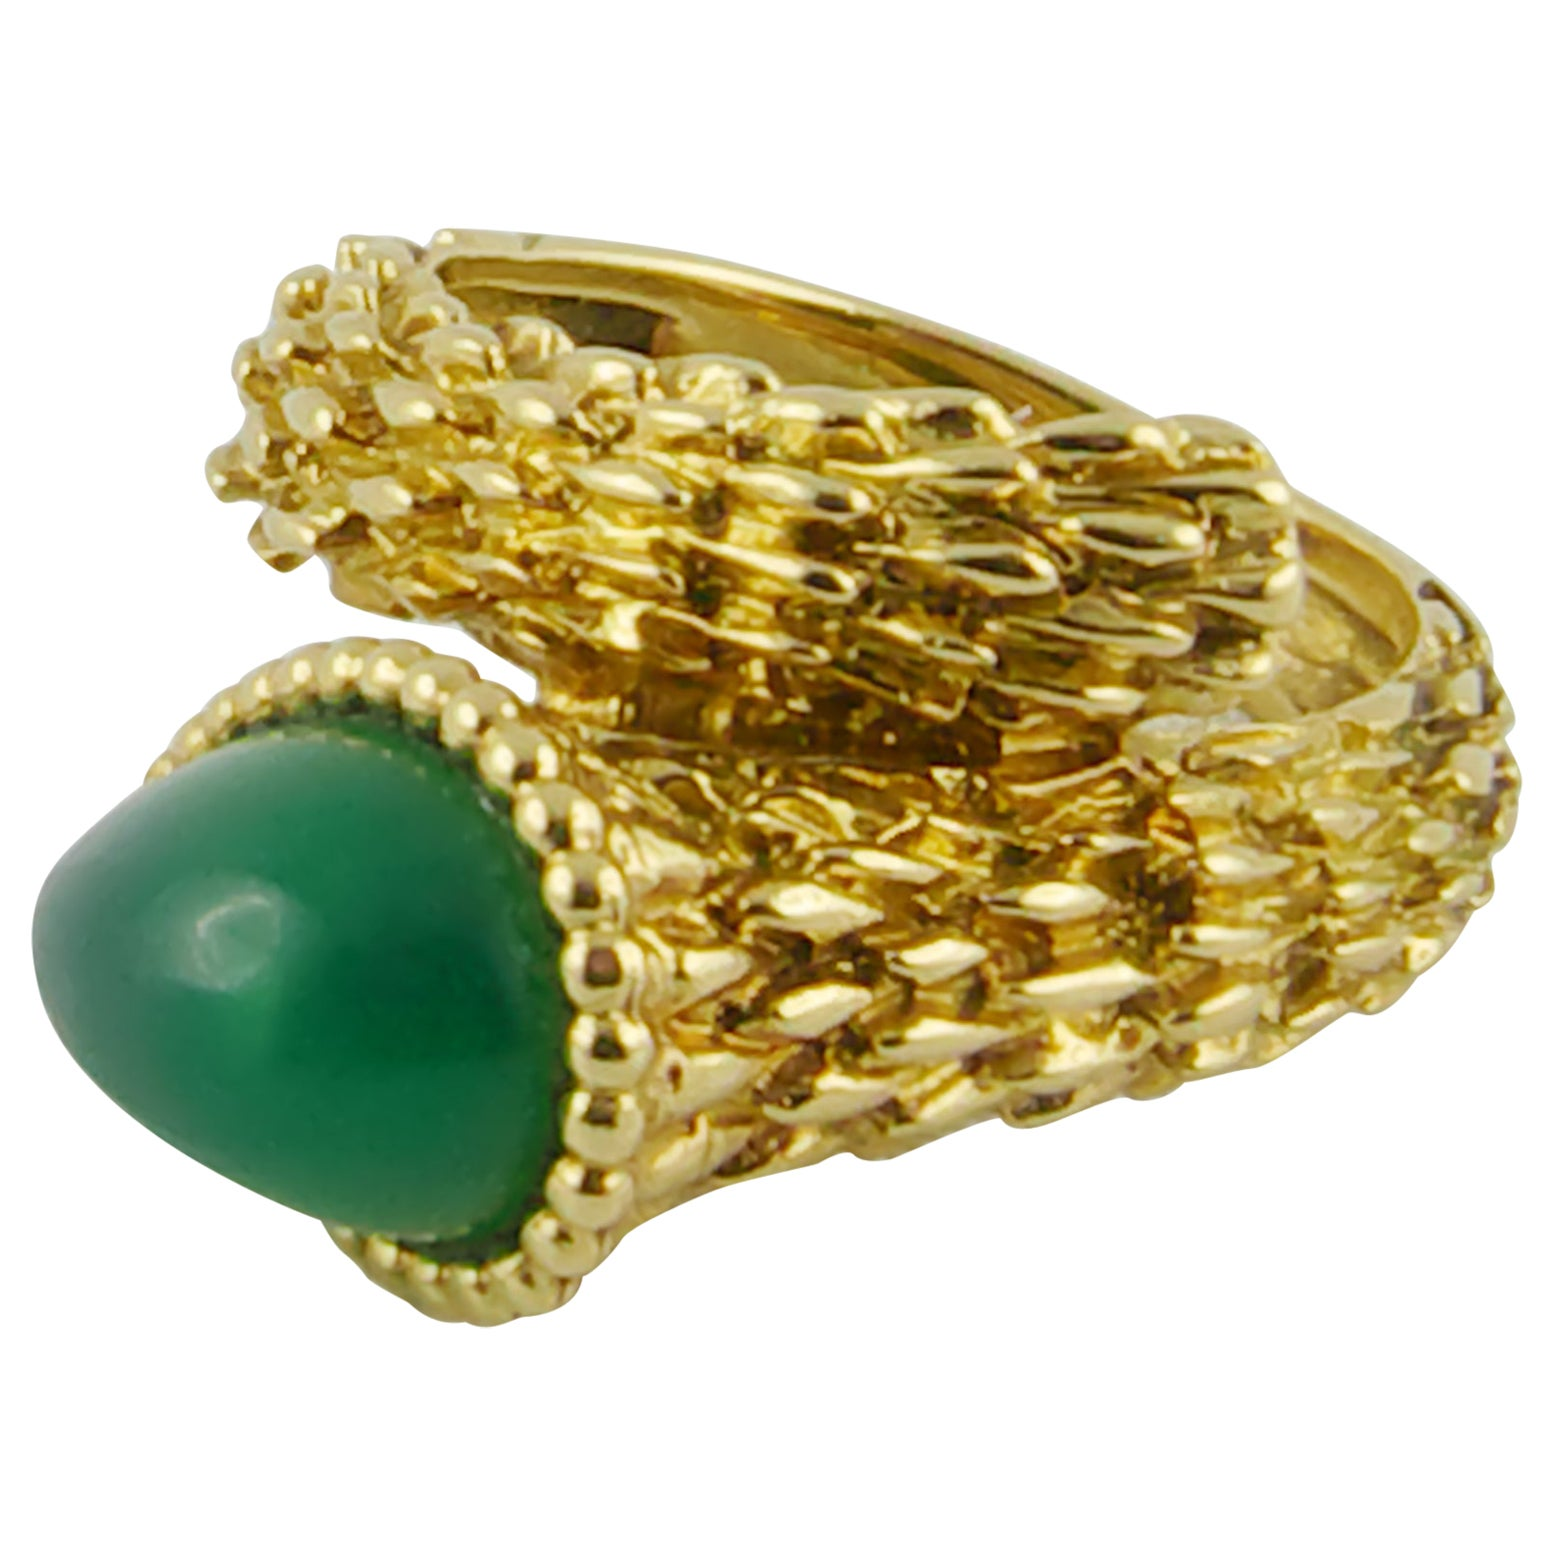 1970s Boucheron Serpent Bohème Ring S Motif in Yellow Gold and Chrysophrase